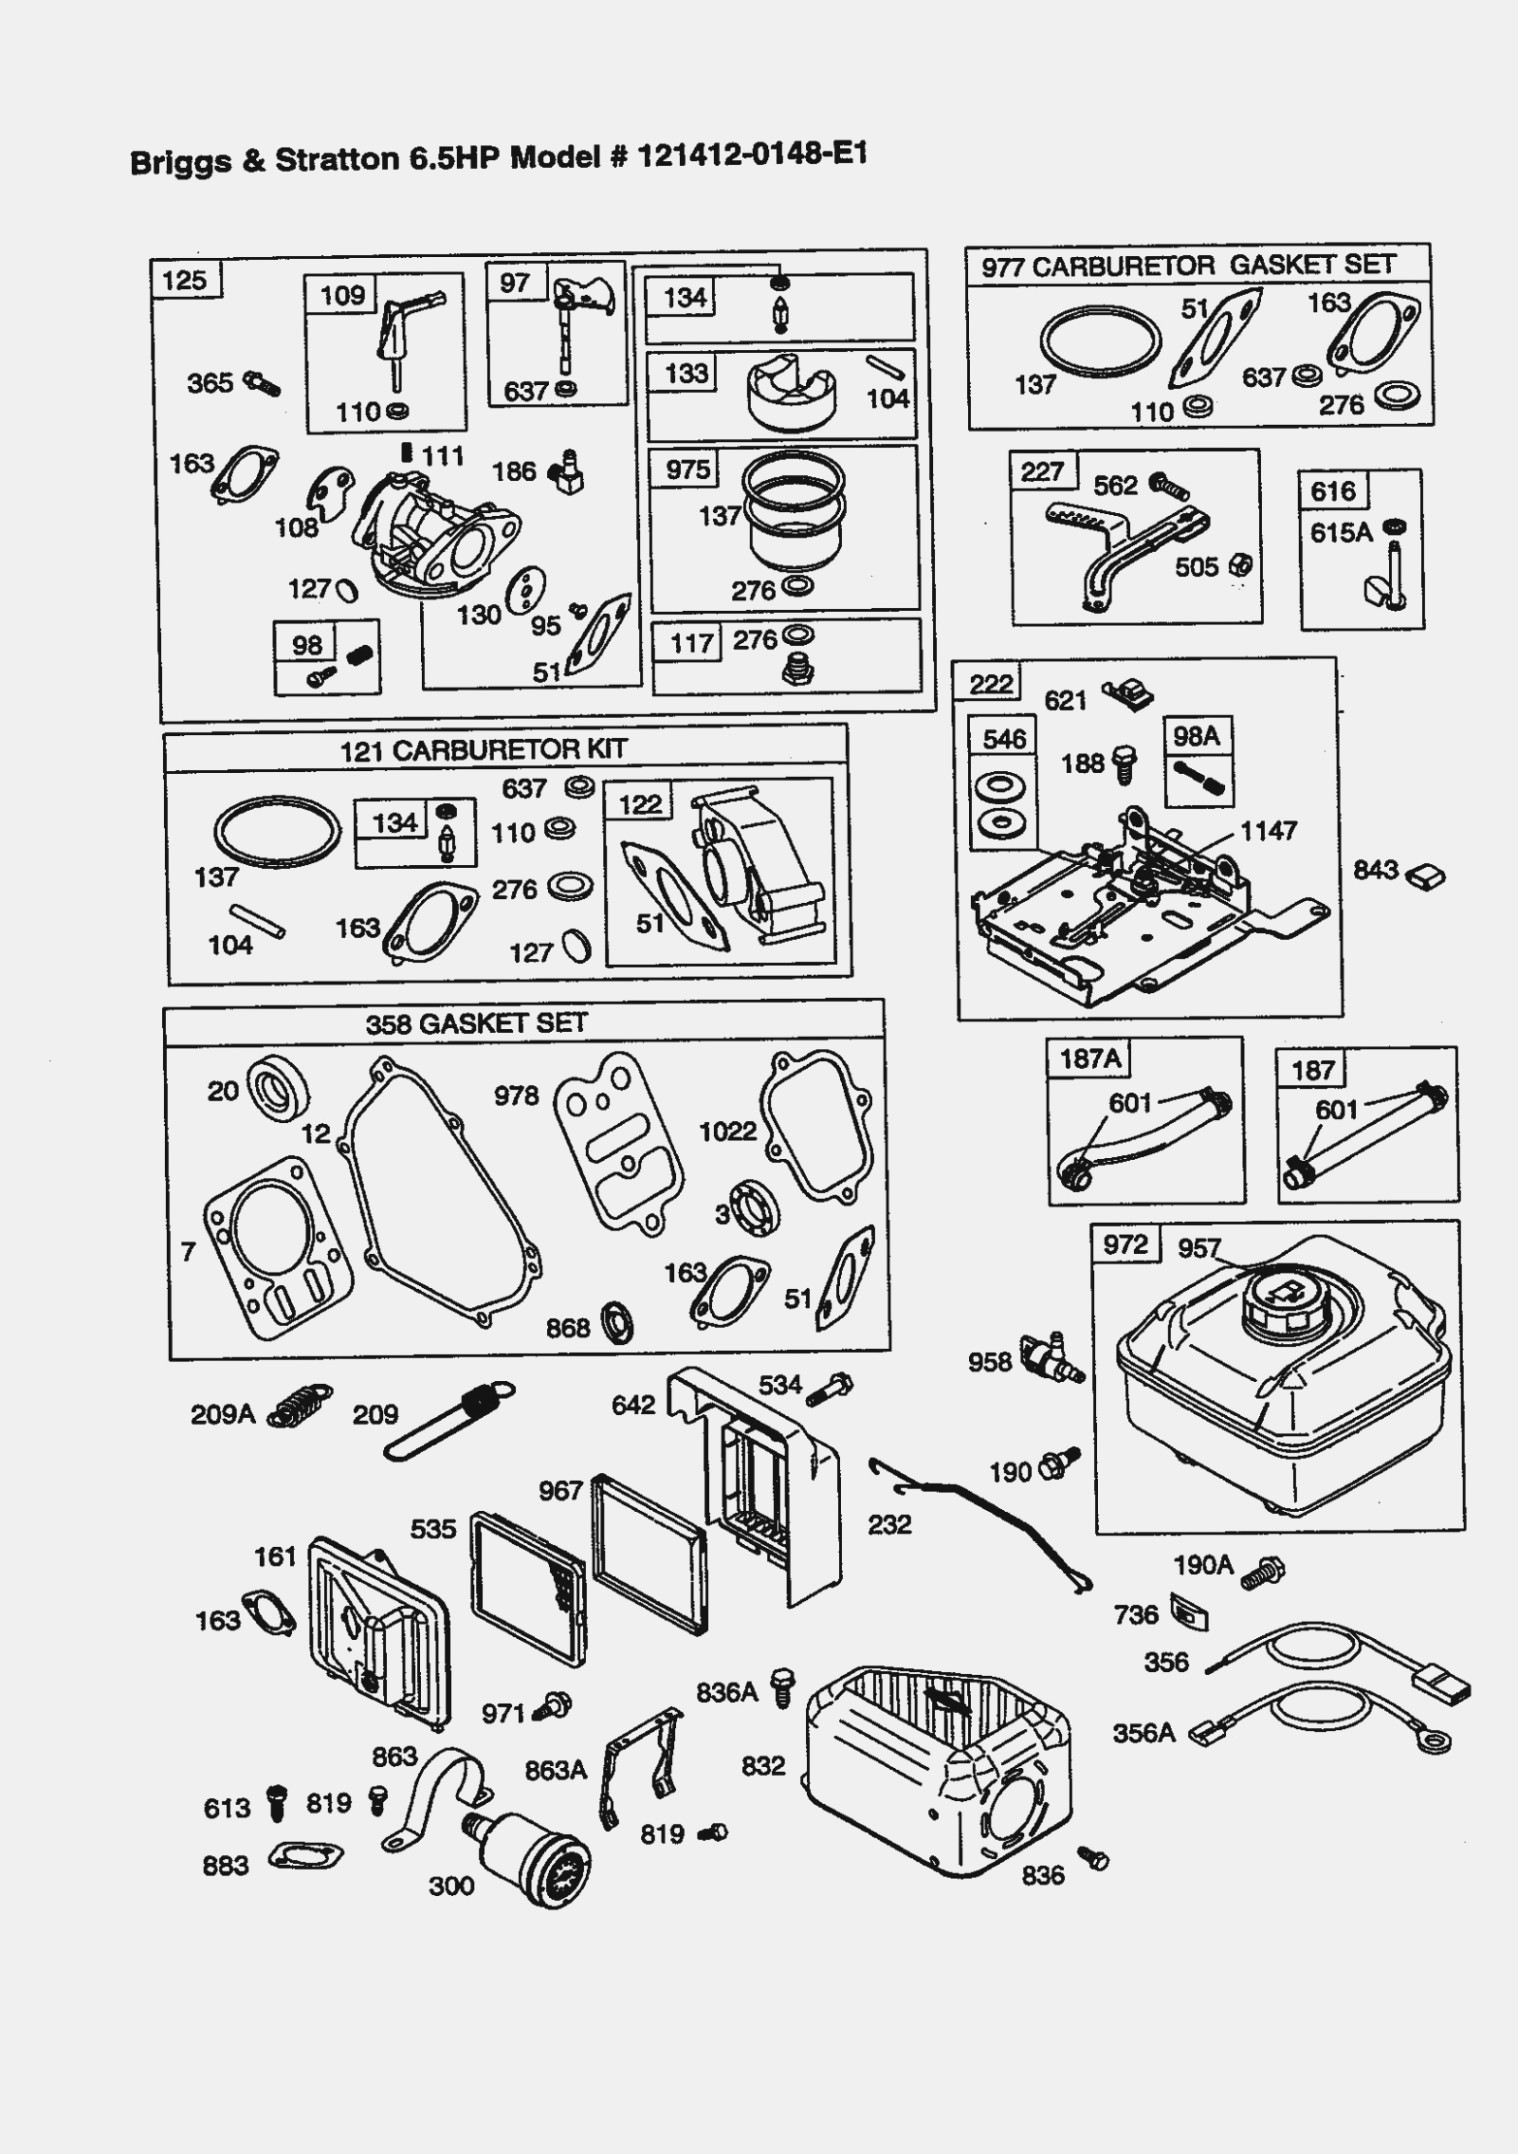 Briggs and Stratton Carburetor Parts Diagram 11 Hp Briggs and Stratton Wiring Diagram Of Briggs and Stratton Carburetor Parts Diagram